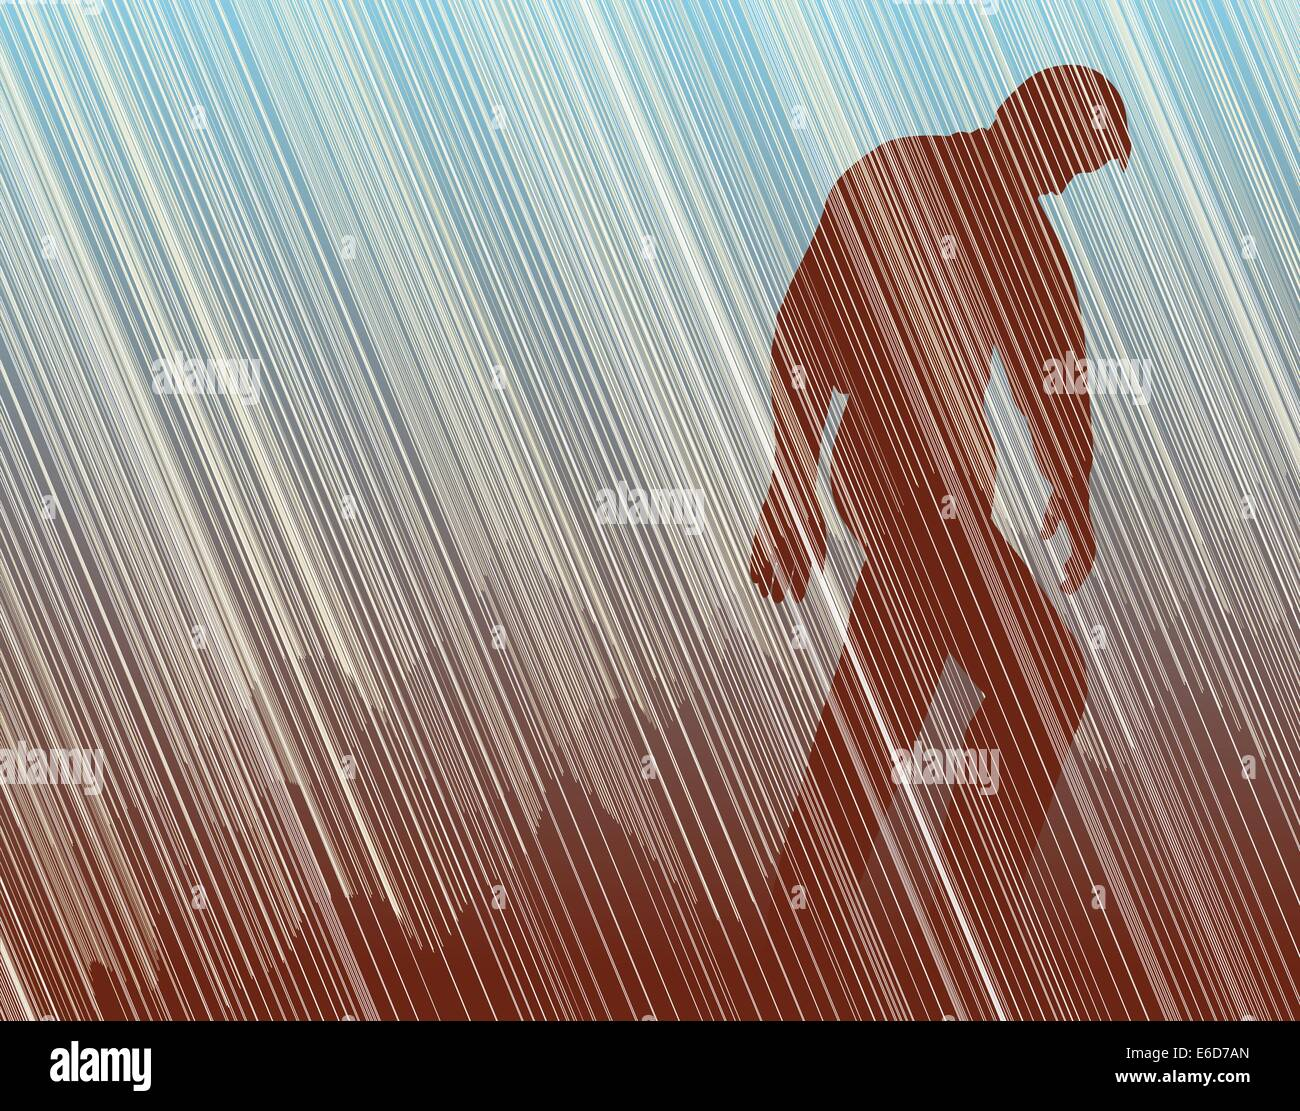 Editable vector illustration of a man walking in torrential rain - Stock Vector